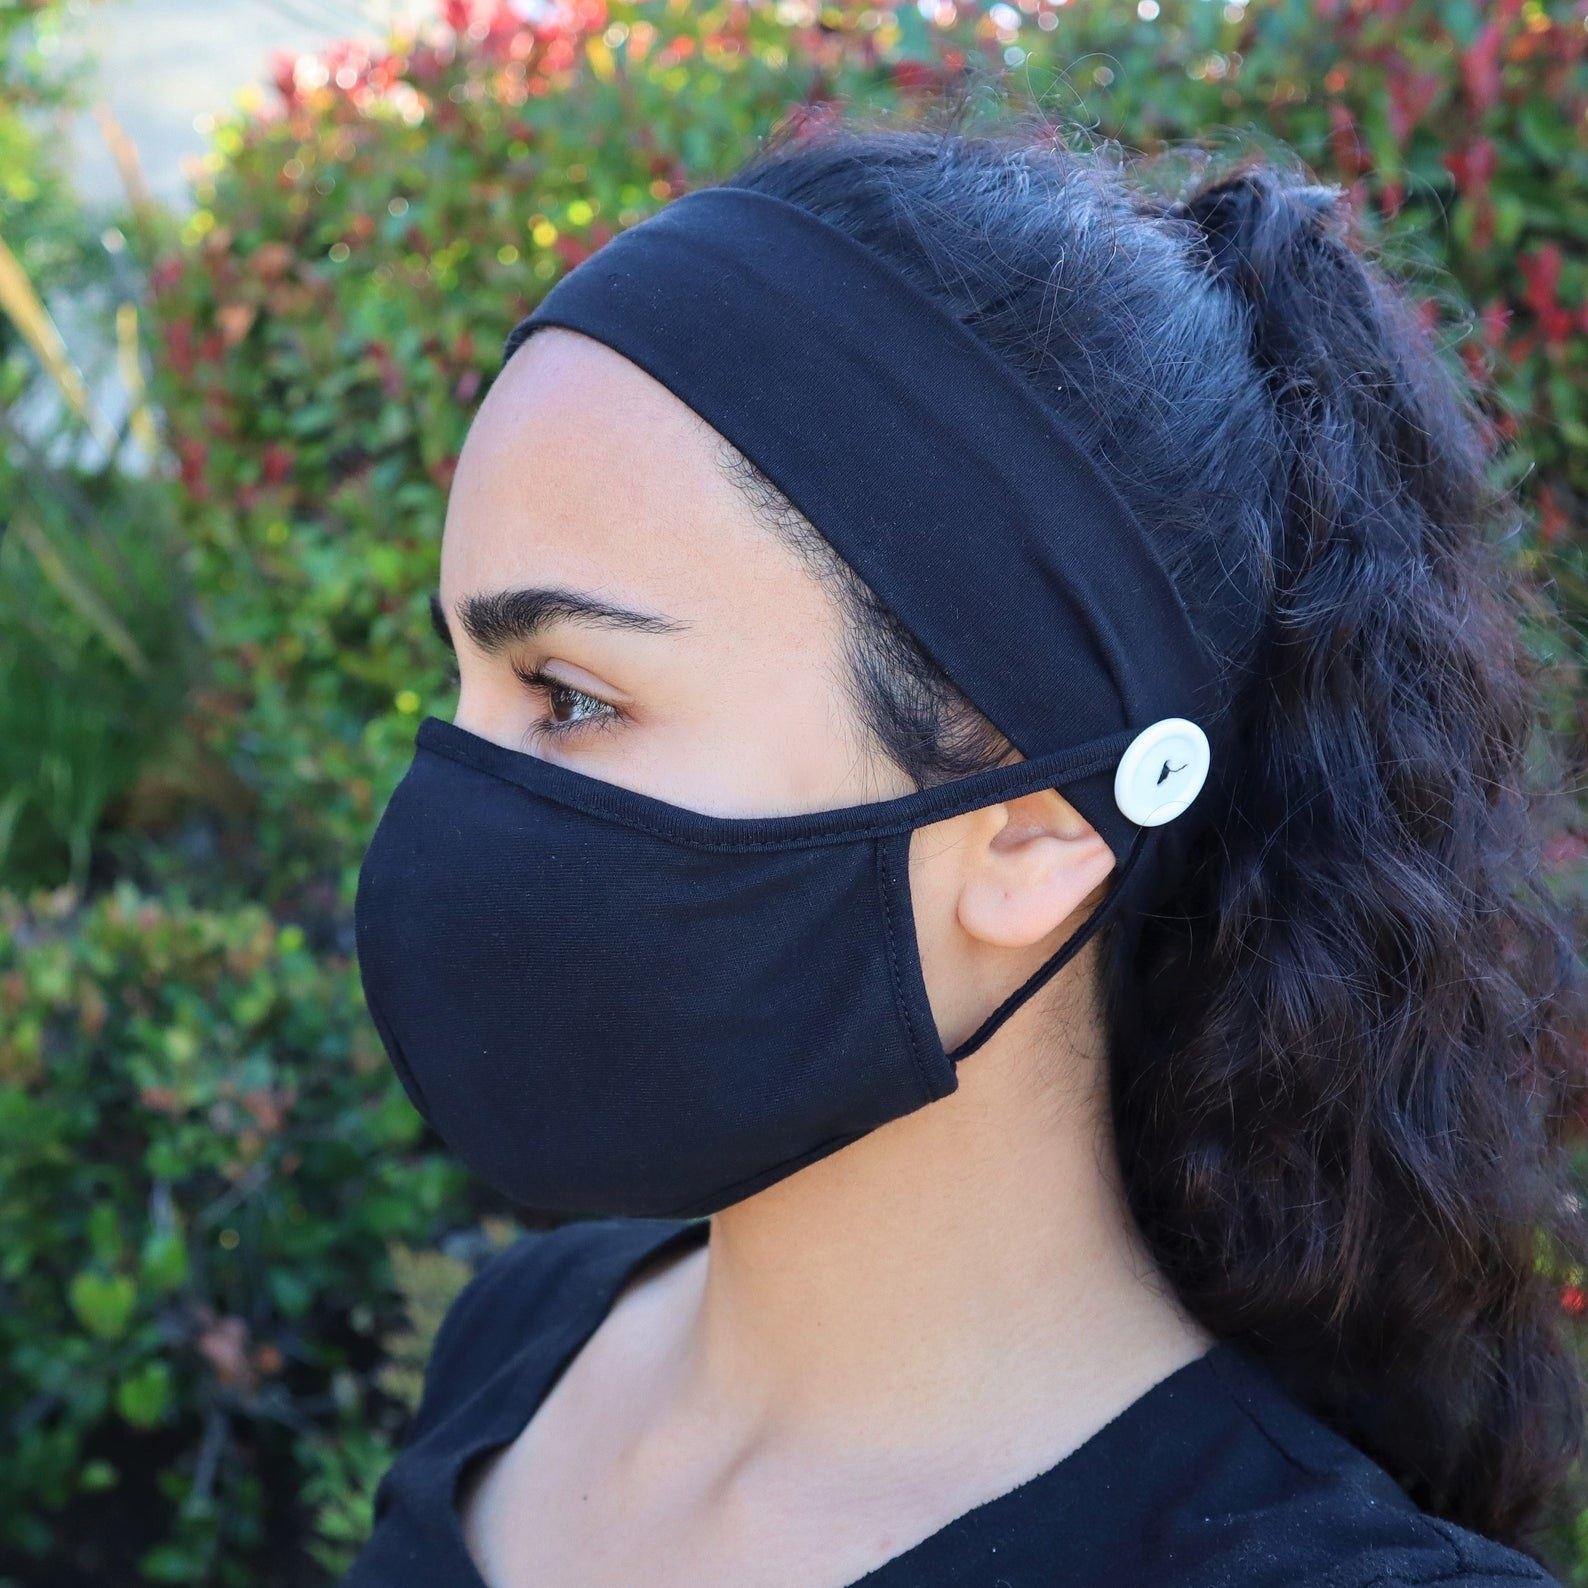 A model in a black face mask attached with to button on a headband